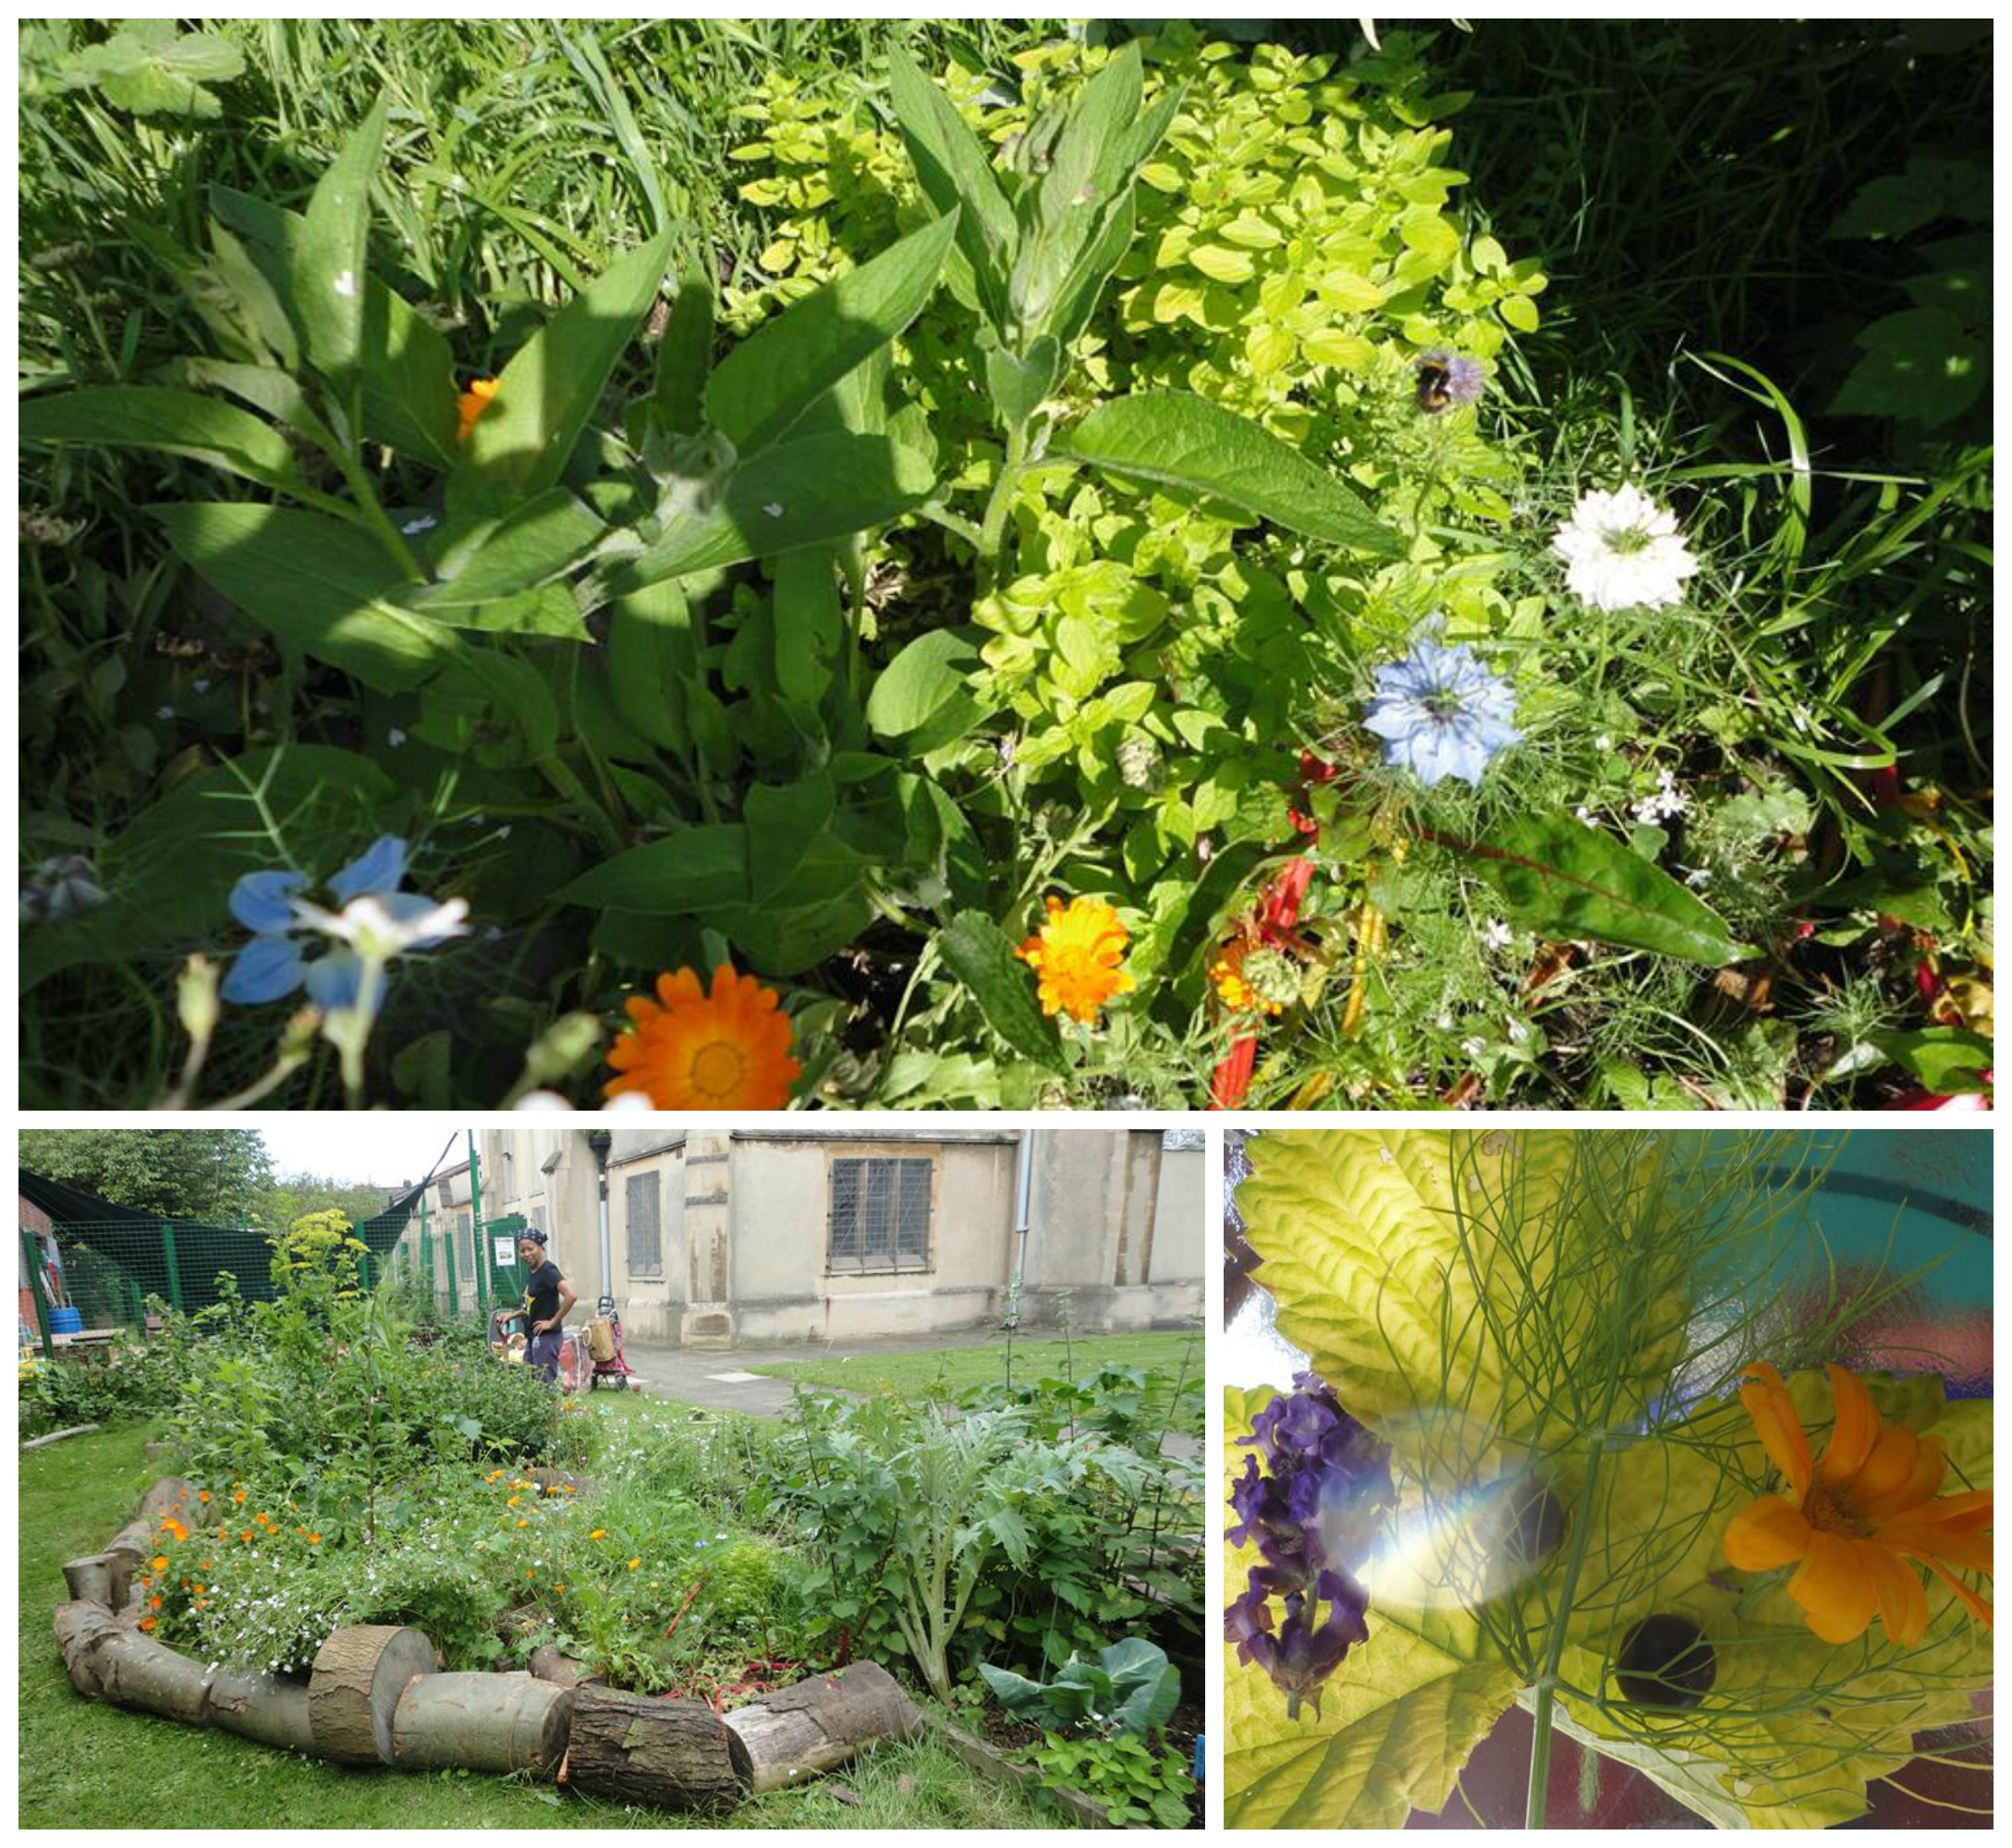 Open edible gardens, gardening drop in